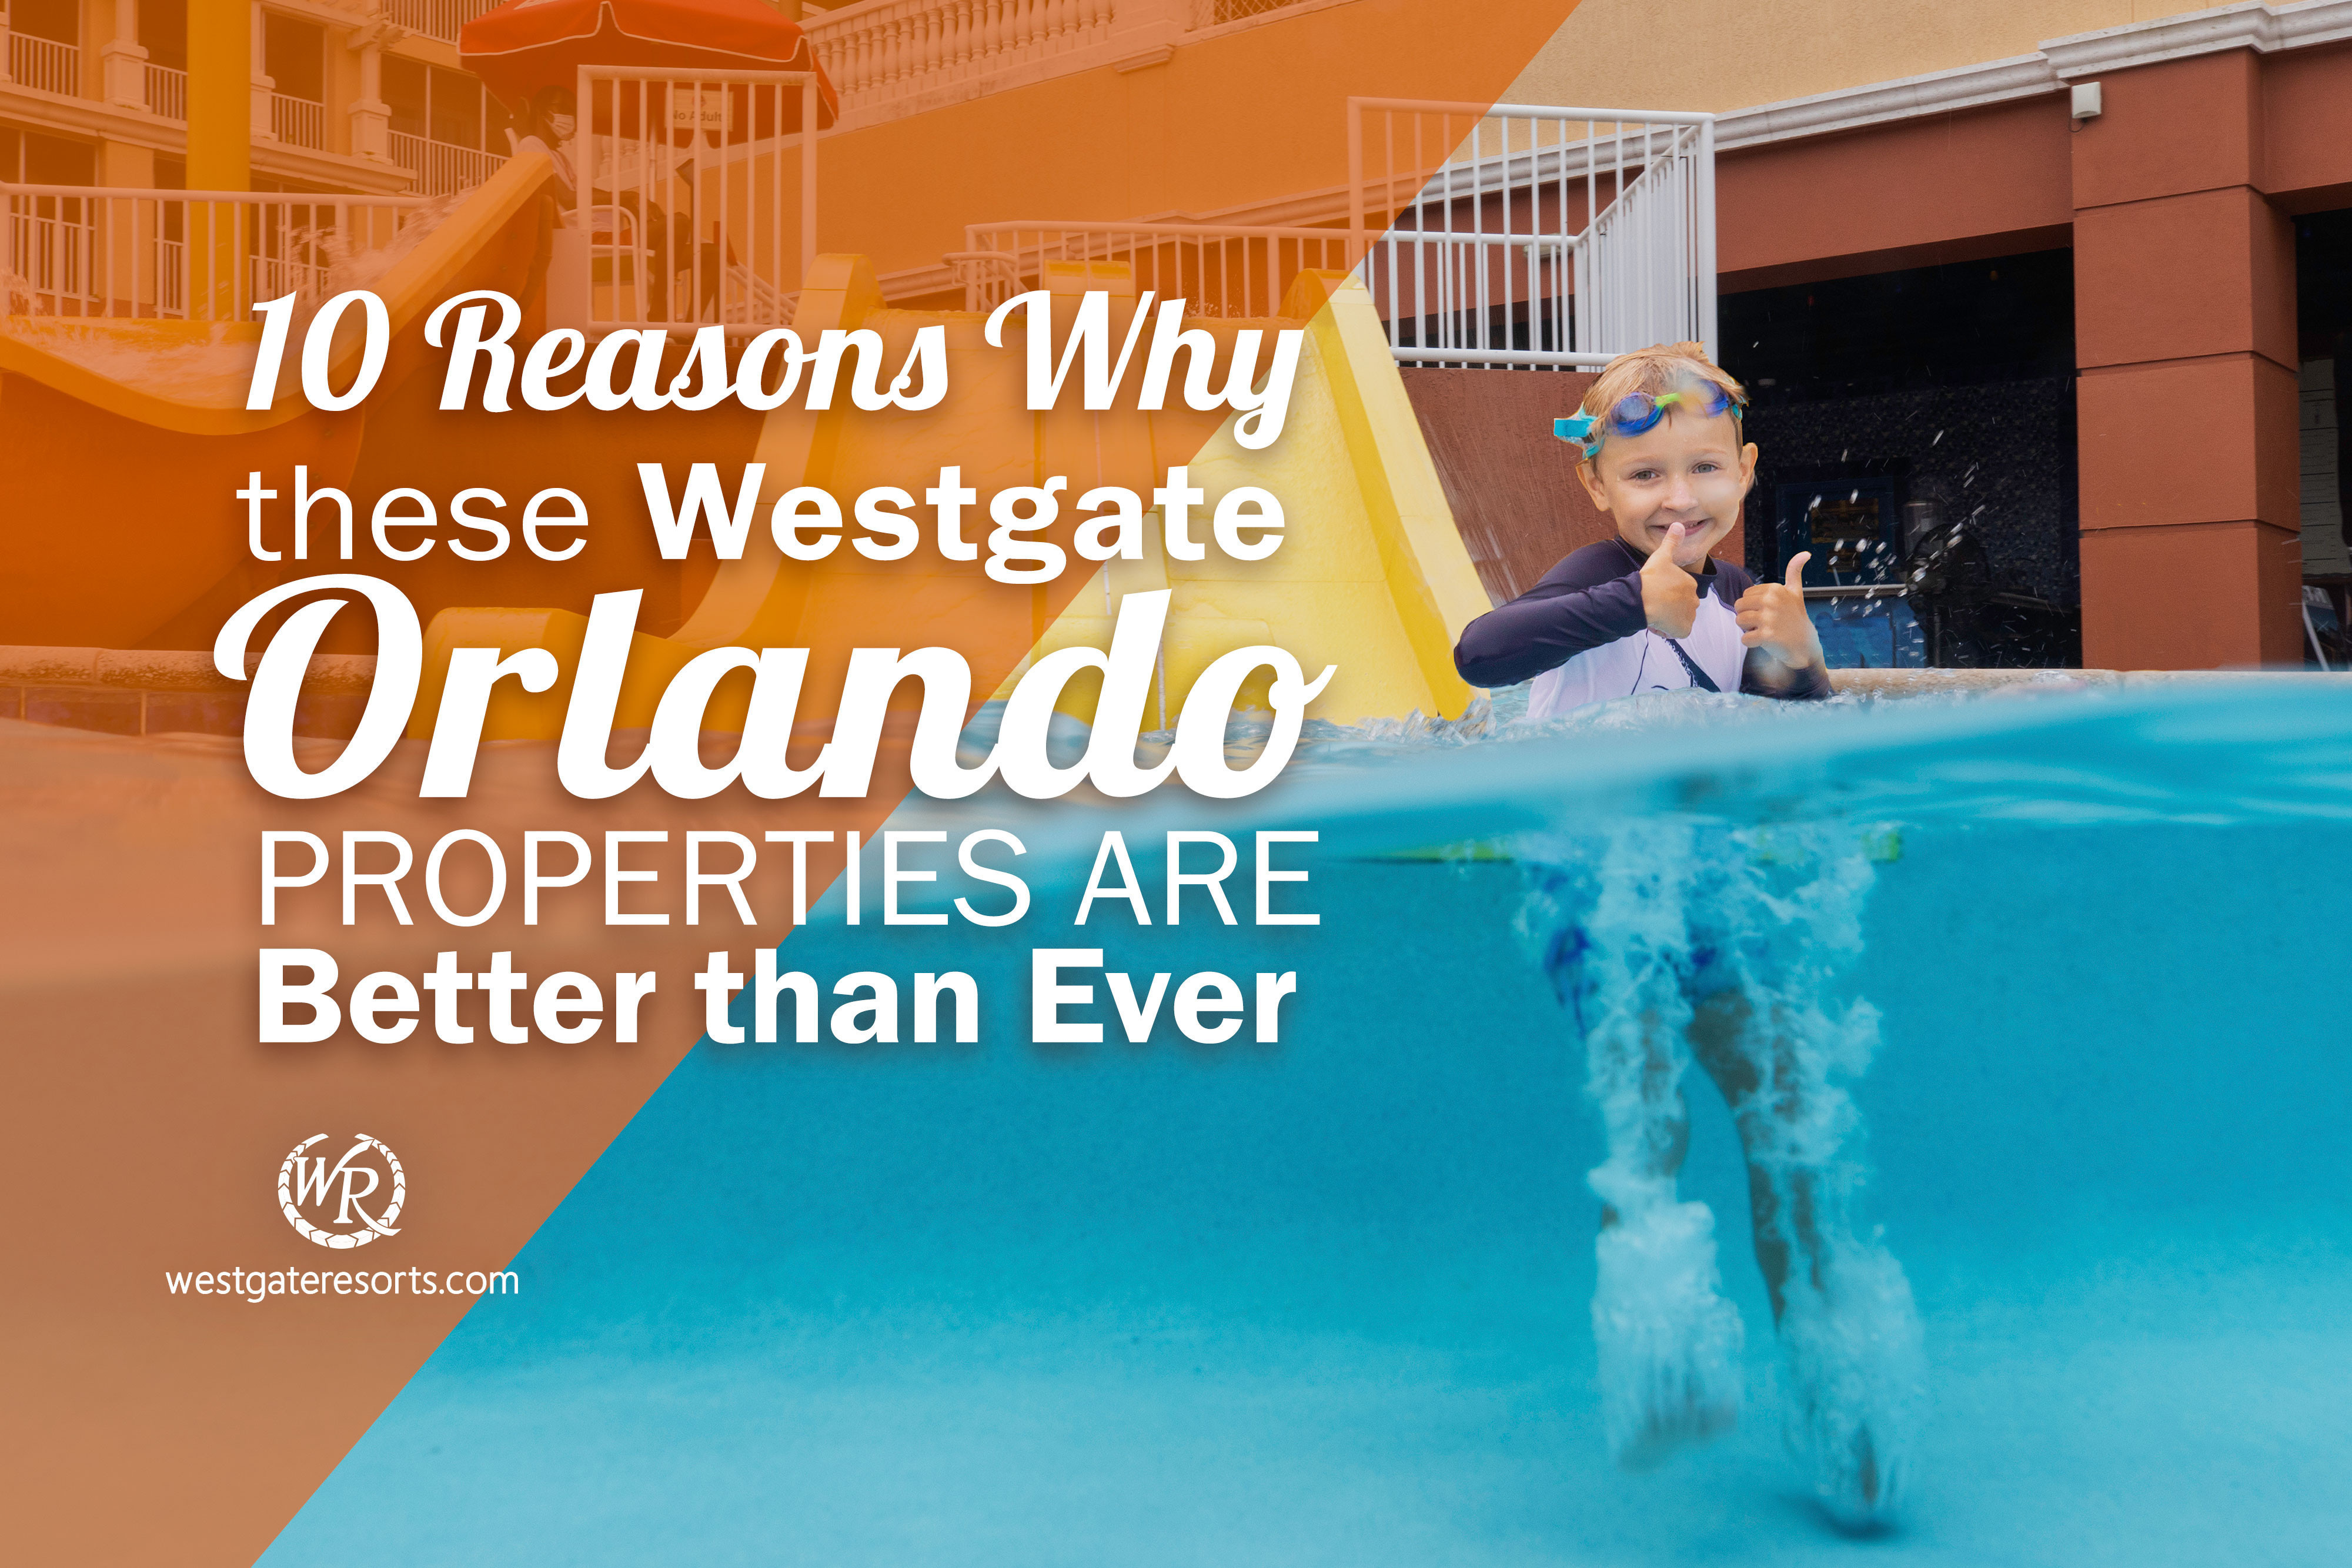 10 Reasons Why These Westgate Orlando Properties are Better than Ever